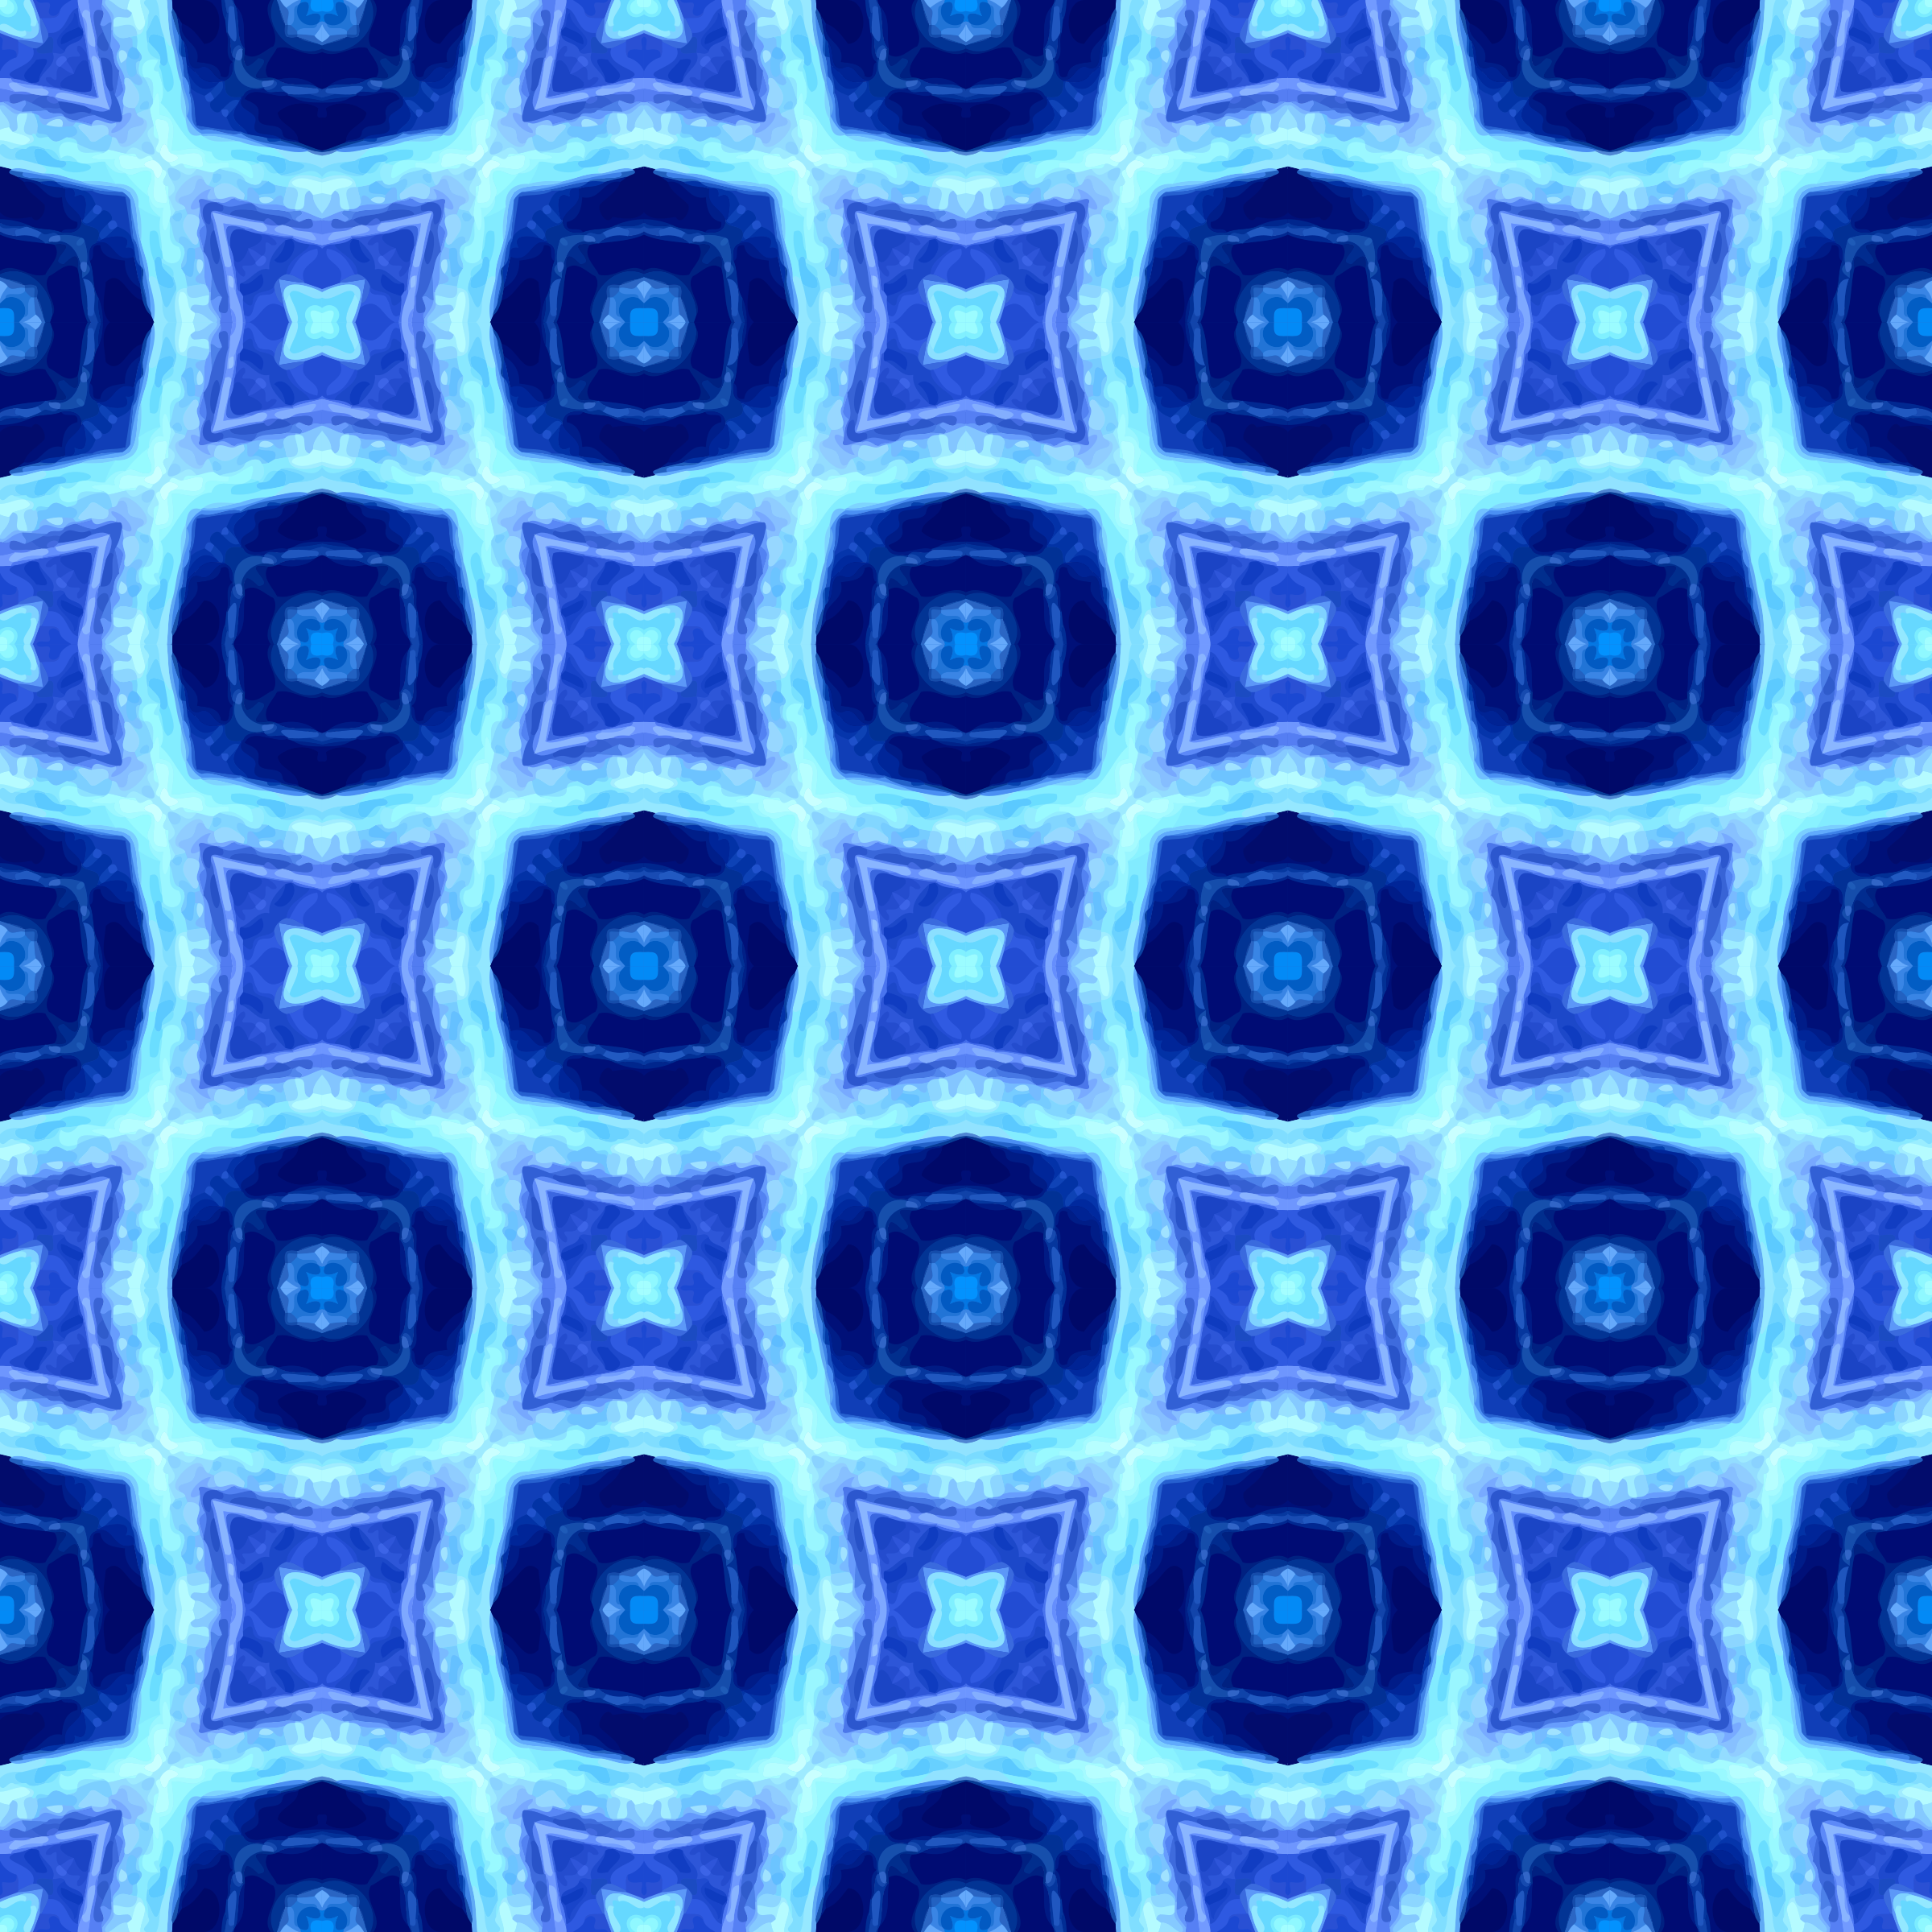 Background pattern 158 (colour 3) by Firkin